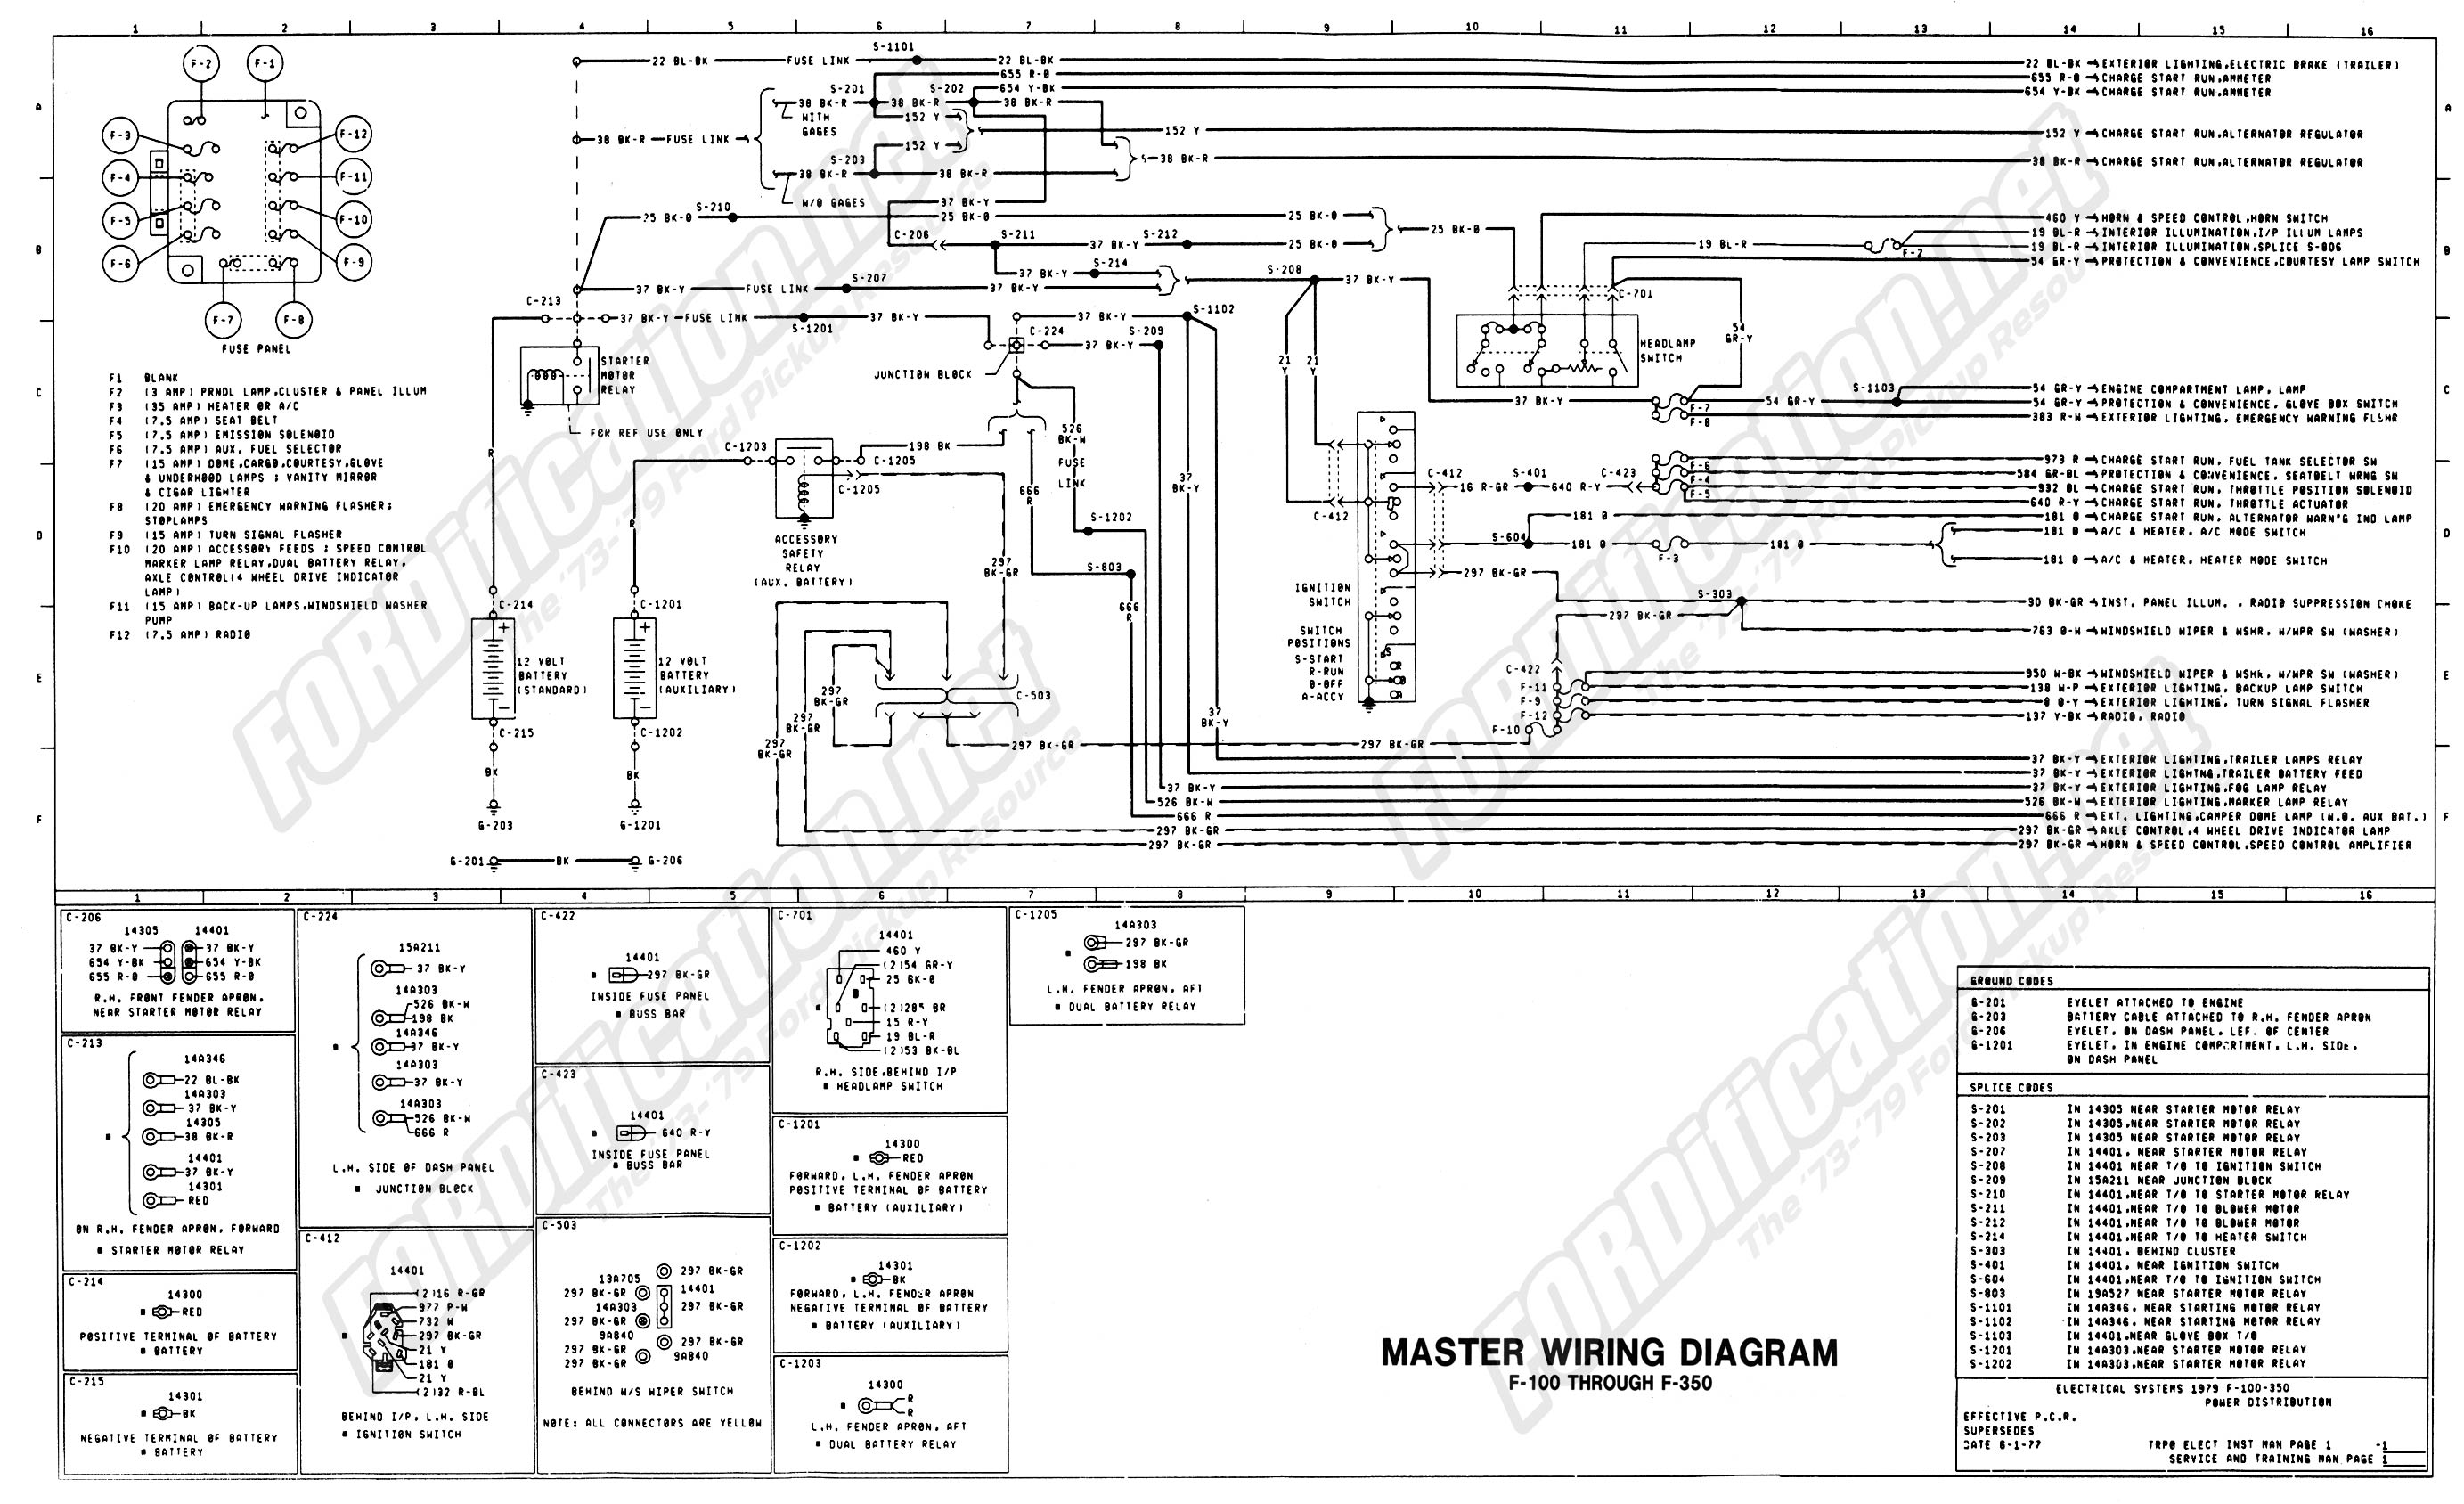 wiring_79master_1of9 1973 1979 ford truck wiring diagrams & schematics fordification net truck wiring diagrams at edmiracle.co